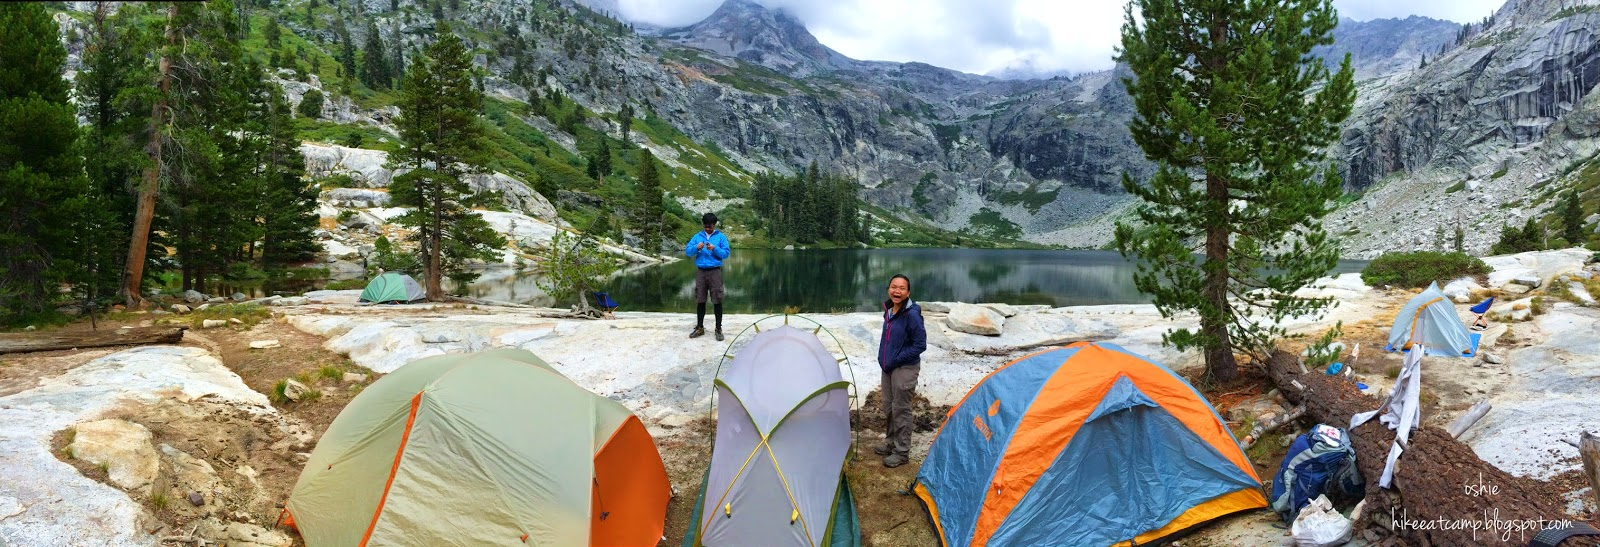 That evening we were blessed with clear skies. And with the generosity of other c&ers with their information we were able to observe the International ... & Hike. Eat. Camp. Repeat.: High Sierra Trail Part 2 - Buck Creek ...